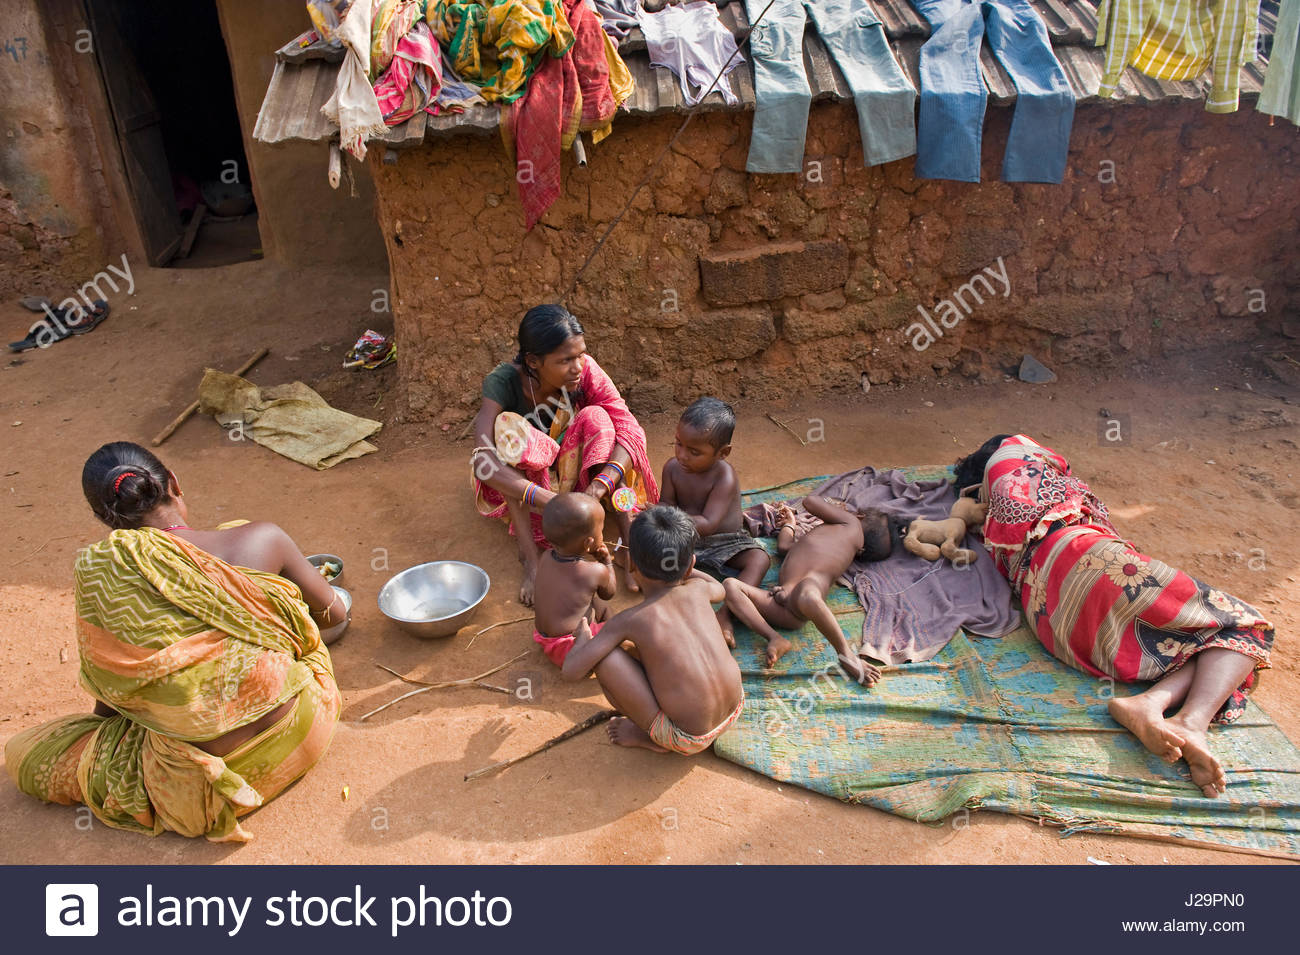 India, Orissa, Sadaibarini, untouchable village specialized in the foundry of objects, family rest - Stock Image